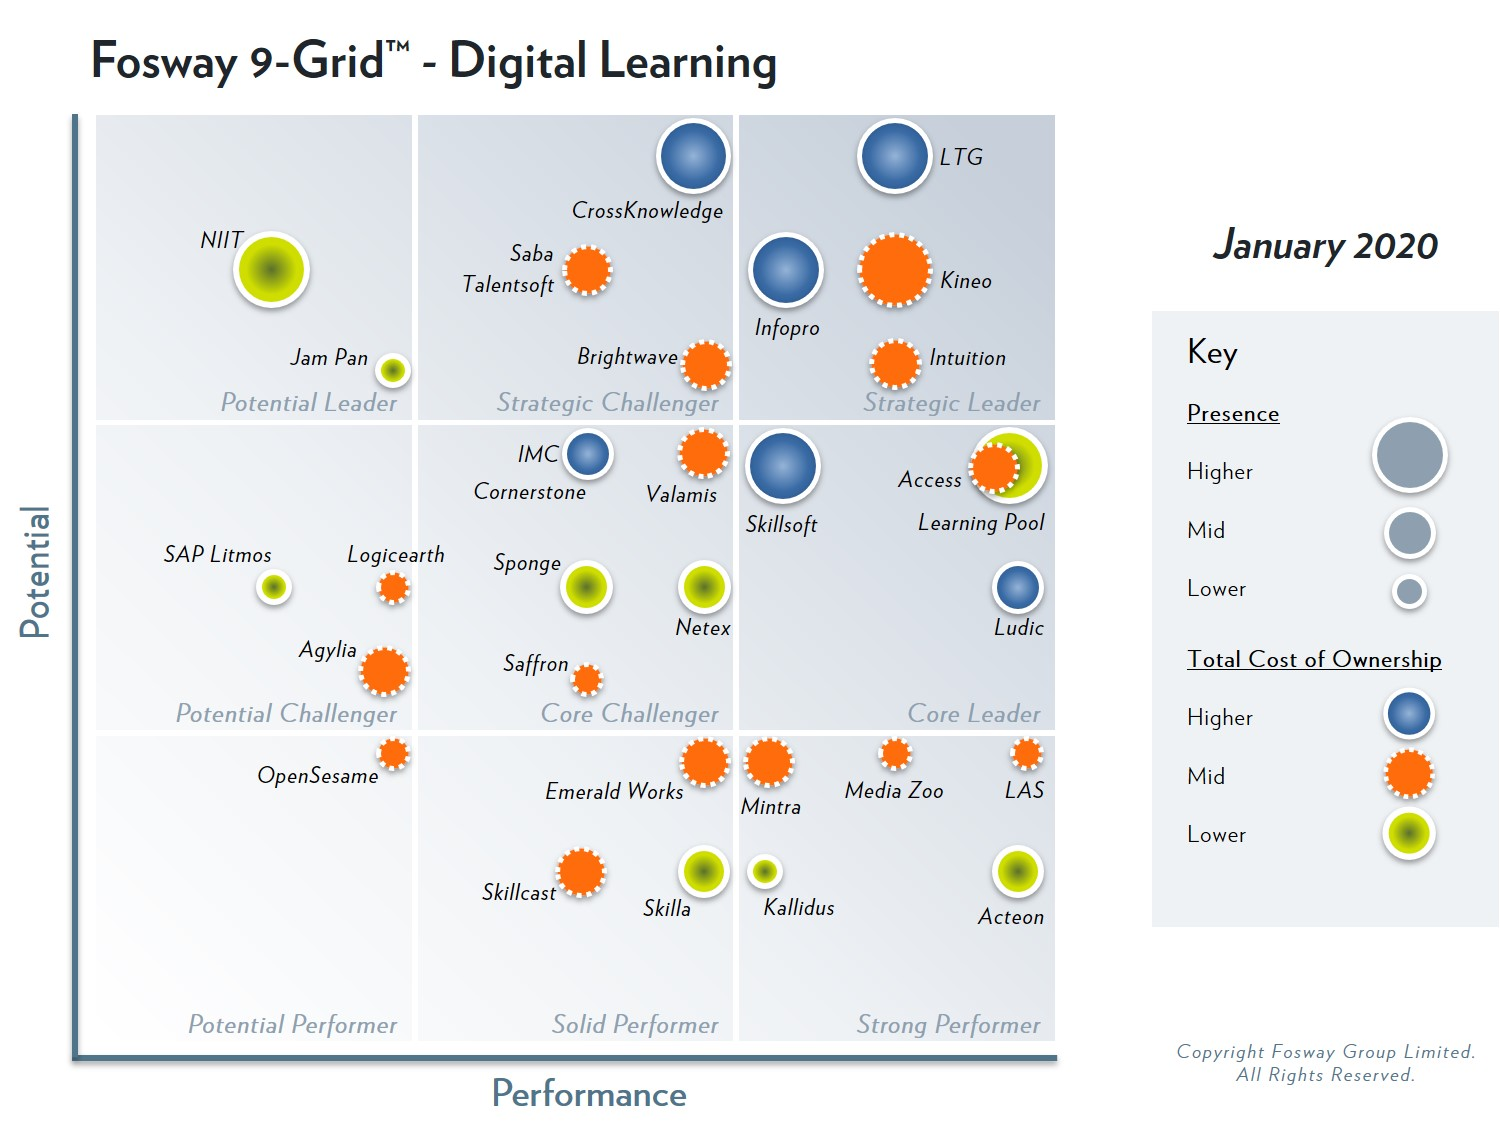 VectorVMS' parent company, Learning Technologies Group, has been identified as Strategic Leader in the 2020 Fosway 9-Grid™ for Digital Learning for the fourth year running